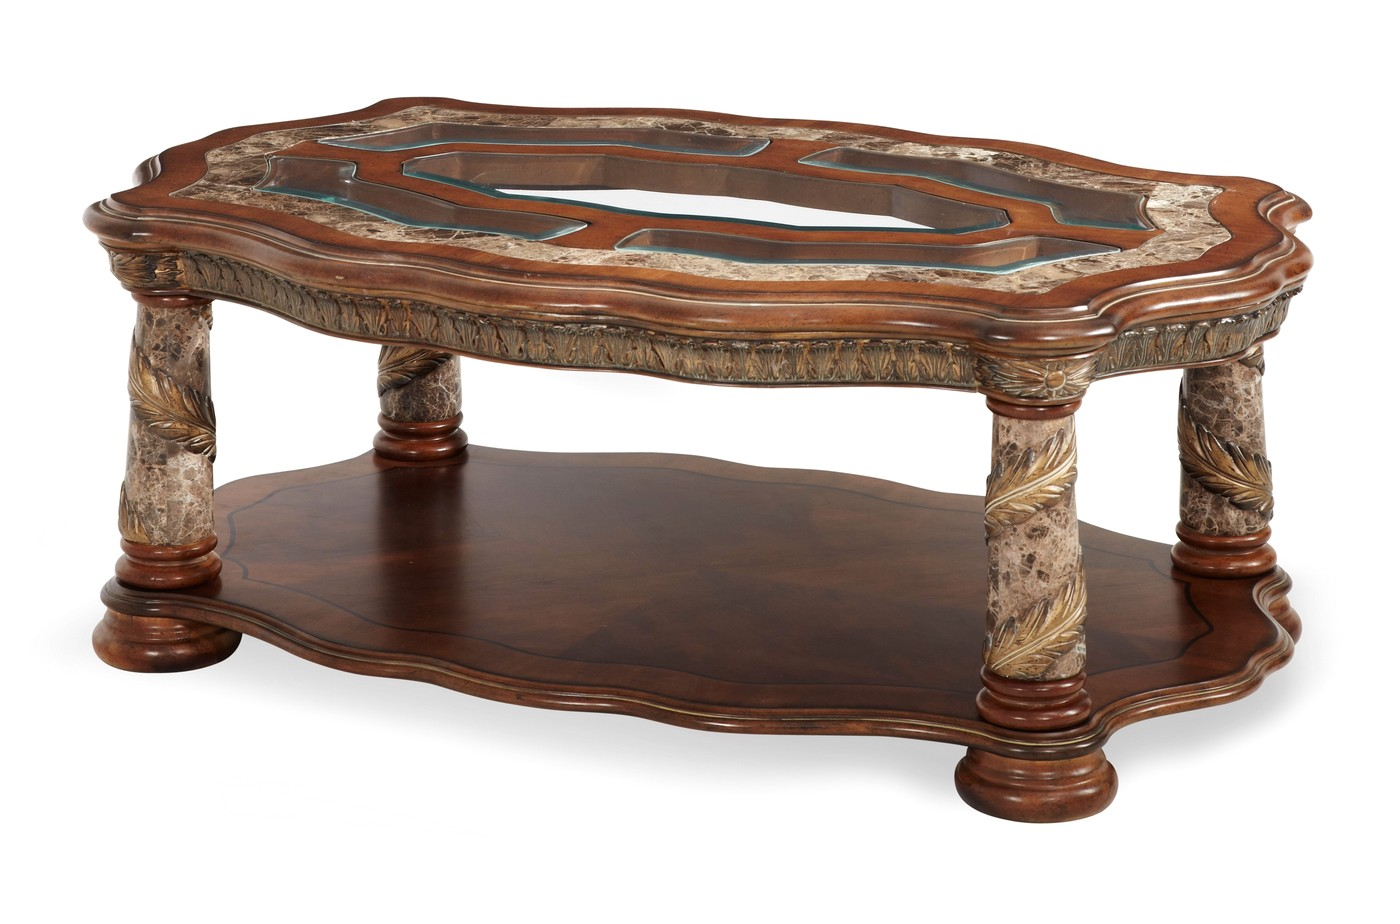 Villa Valencia Old World Birch Marble Coffee Table In Chestnut